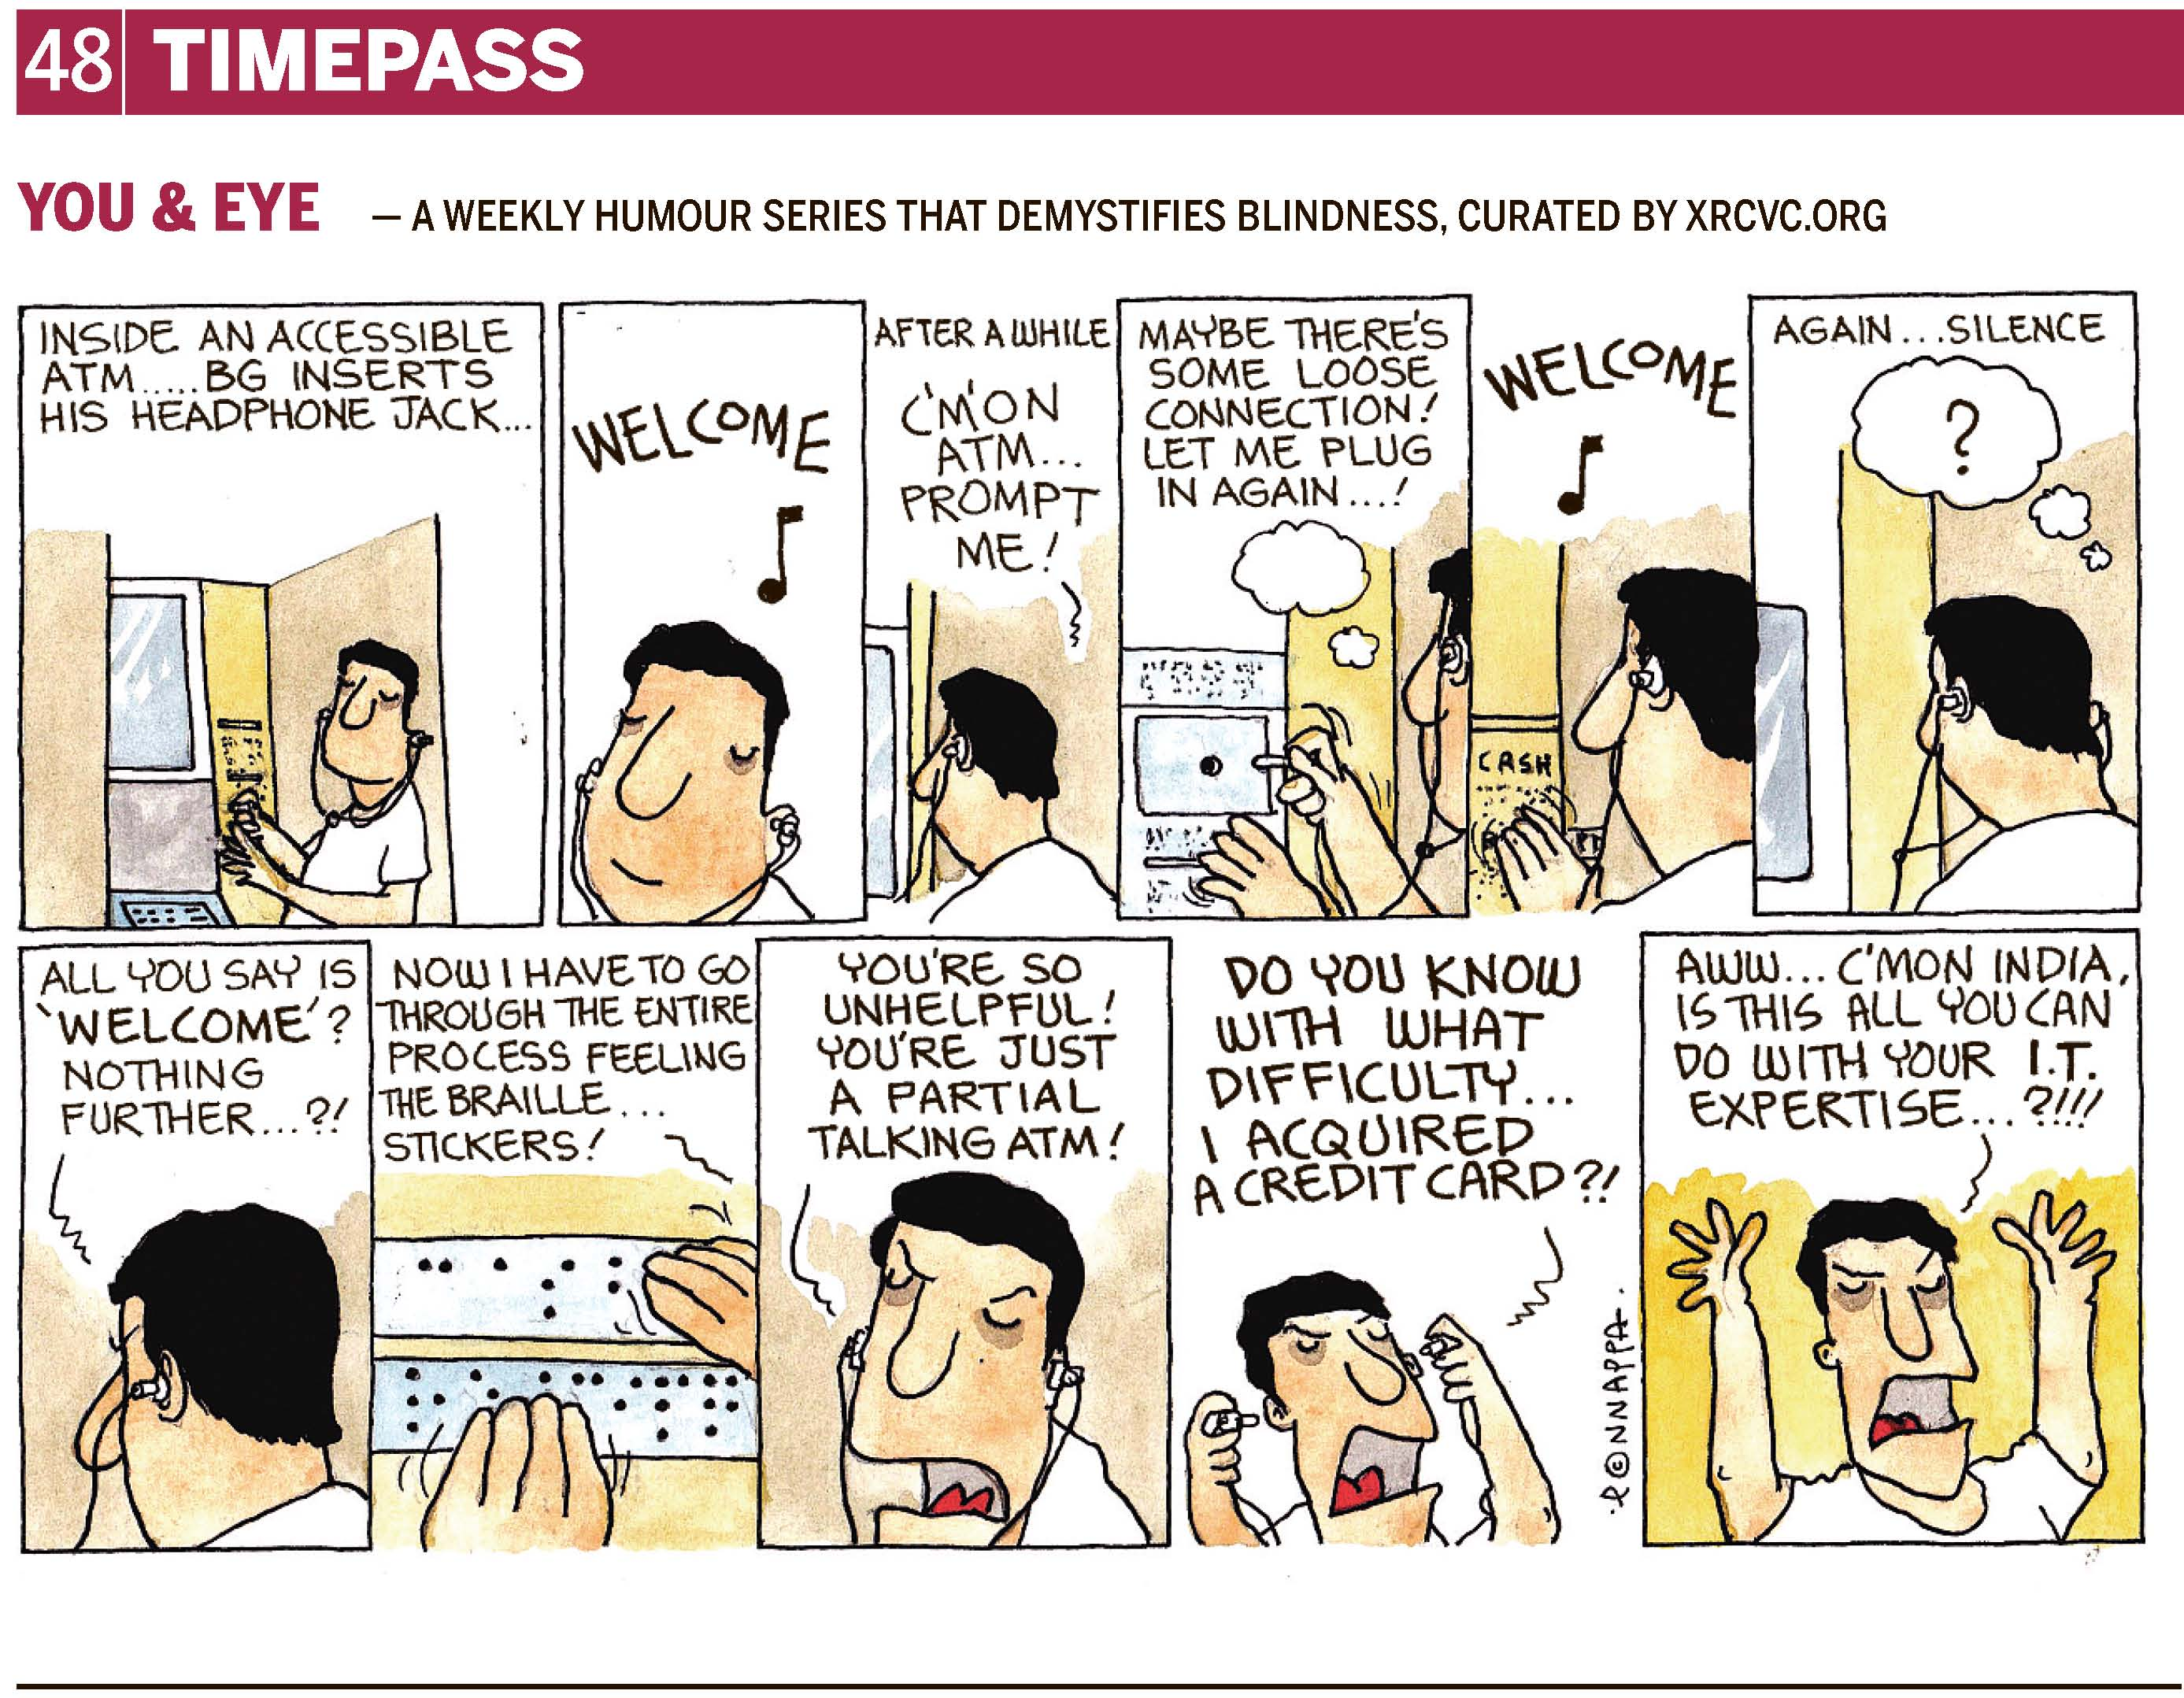 Page 48 | TIMEPASS YOU & EYE – A WEEKLY HUMOUR SERIES THAT DEMYSTIFIES BLINDNESS, CURATED BY XRCVC.ORG Image description: A cartoon strip with 11 frames… Frame 1: (BG is seen standing within an ATM cubicle wearing earphones & holding its plug in his right hand, while his left hand is close-by near the audio jack.) Text: Inside an Accessible ATM... BG inserts his headphone jack. Frame 2: (A close-up of BG wearing earphones. A musical note is seen, representing some audio.) Text: Welcome! Frame 3: (BG is seen from the back, wearing earphones.) Text: After a while. BG: C'm'on ATM... Prompt me! Frame 4: (A close-up of BG holding the earphone plug in his right hand trying to fit it in, while his left hand is close-by near the audio jack. Dots above & below the jack, appear to be Braille labels for the jack & the card insertion slot. A thought bubble shows BG thinking: May be there's some loose connection! Let me plug in again…! Frame 5: (A close-up of BG wearing earphones and running his fingers along the dots. The word 'CASH' is written in sighted print above the dots. A musical note is seen, representing some audio.) Text: Welcome! Frame 6: (A close-up of BG wearing earphones. A thought bubble is seen over BG with a question mark – ? – in it.) Text: Again… silence. Frame 7: (A close-up of BG from the back, wearing earphones) BG: All you say is 'Welcome'? Nothing further…?! Frame 8: (A close-up of BG's fingers running along Braille dots which form the words 'CASH RECEIPT') BG: Now I have to go through the entire process feeling the Braille stickers! Frame 9: (A close-up of BG wearing earphones; his eyebrows are lowered in anger, and his mouth is open wide as he screams) BG: You're so unhelpful! You're just a partial talking ATM! Frame 10: